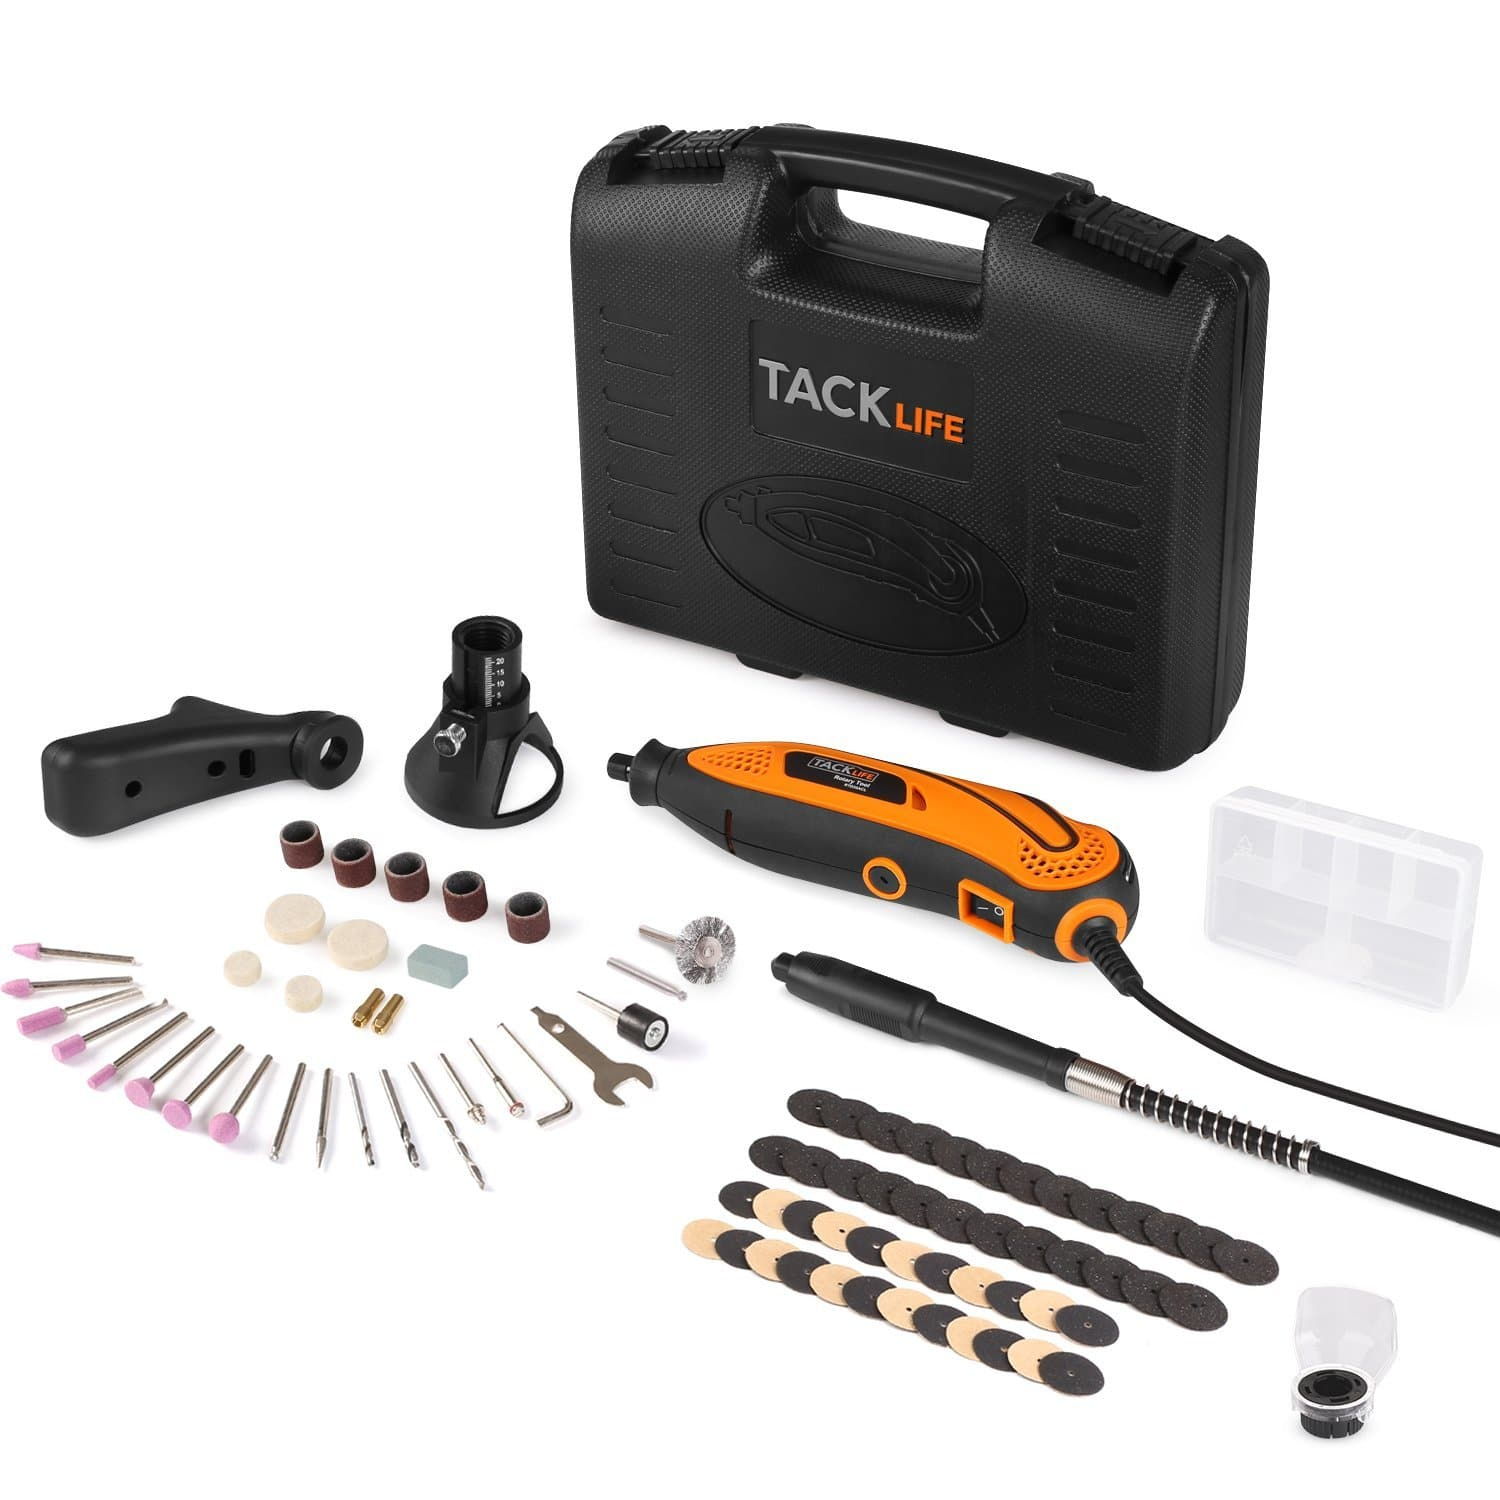 Tacklife Rotary Tool Kit w/ 80 Accessories & 4 Attachments $26.50 + free s/h